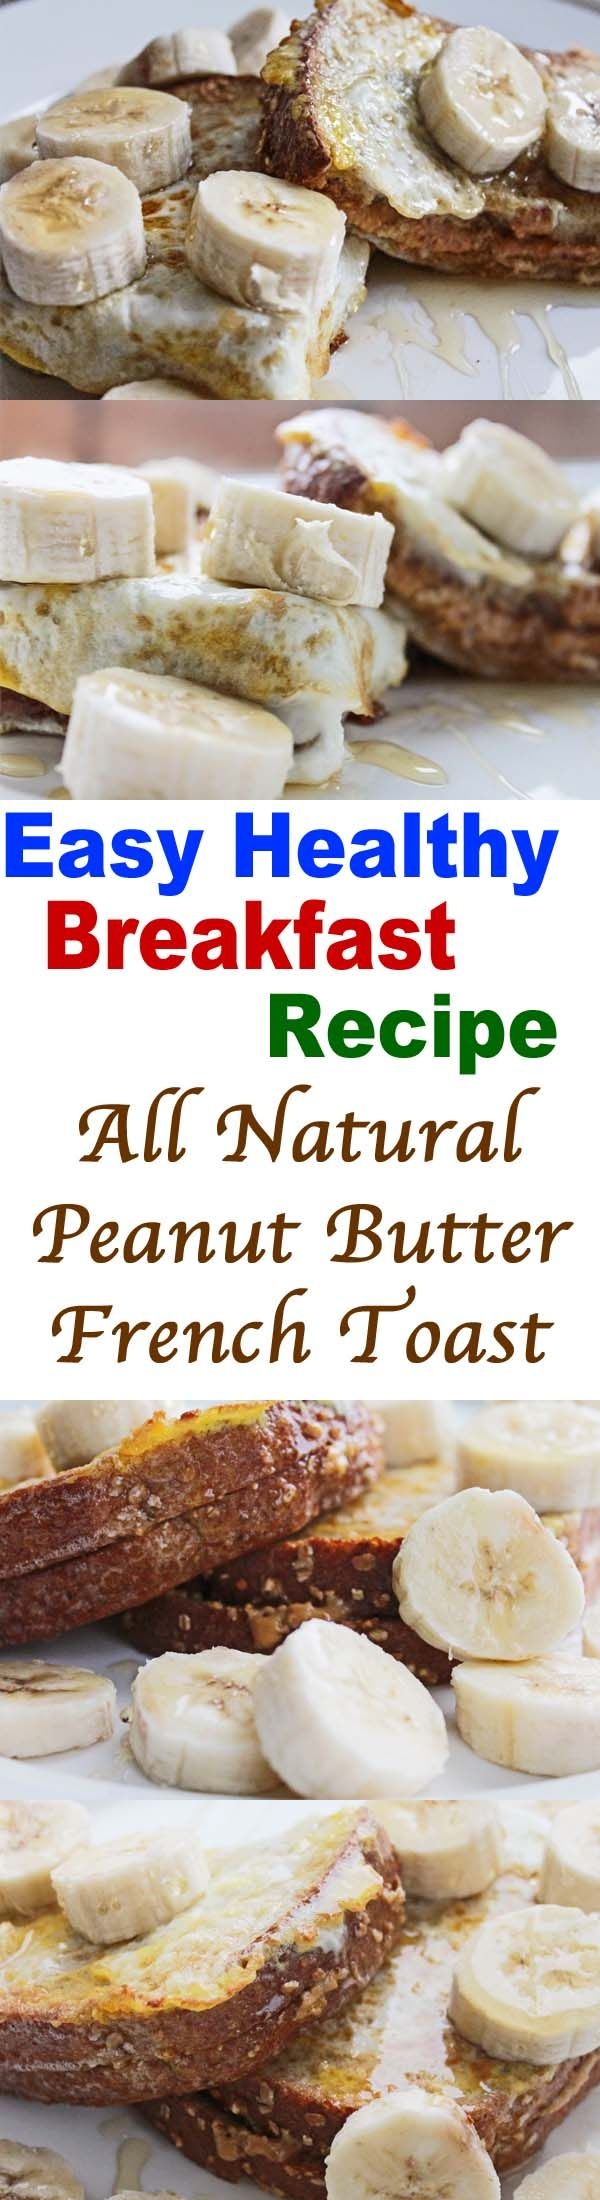 Easy Healthy Breakfast Recipe: All Natural Peanut Butter French Toast | Best Brunch Seattle